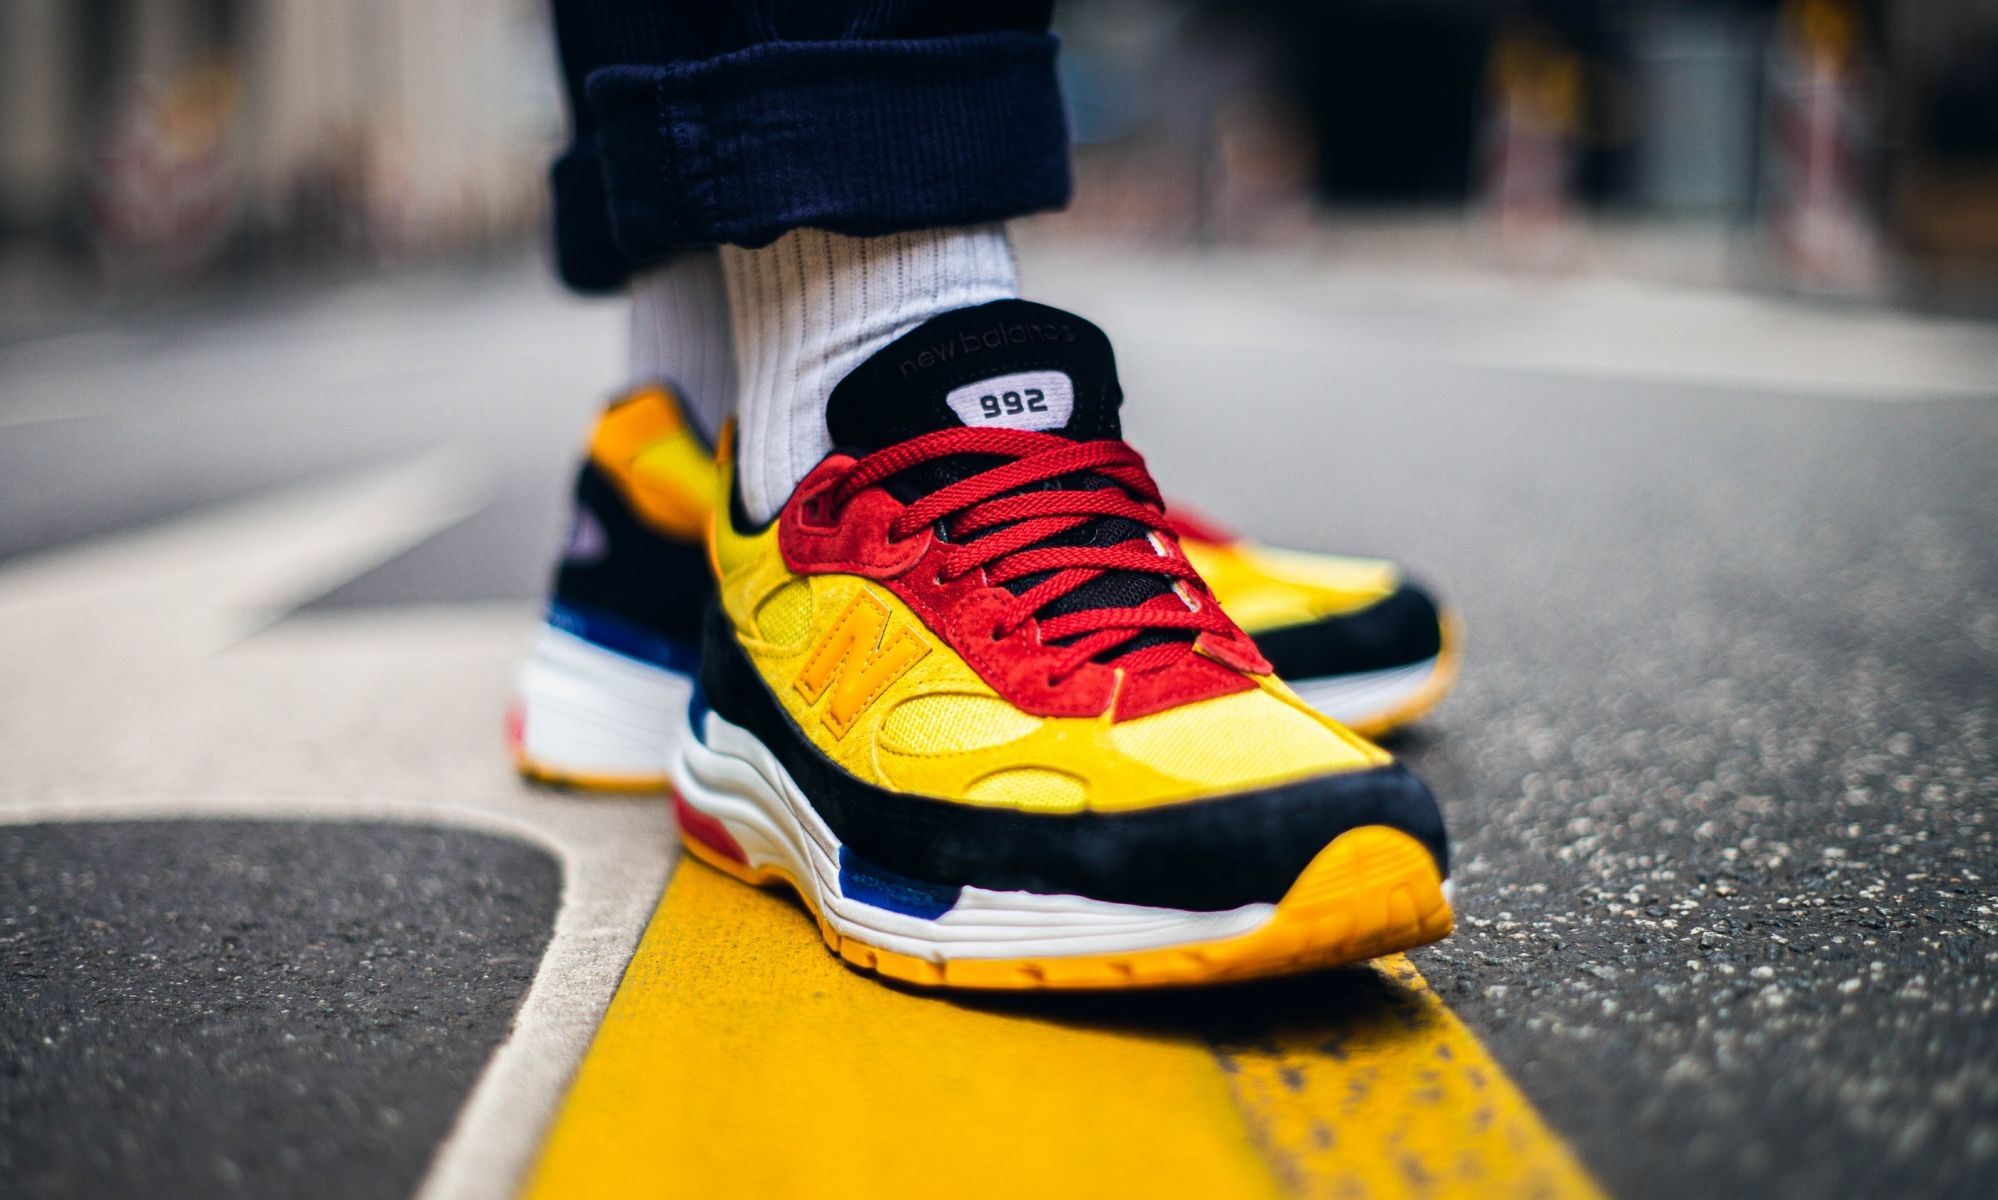 New Balance 992 Bright Yellow Front